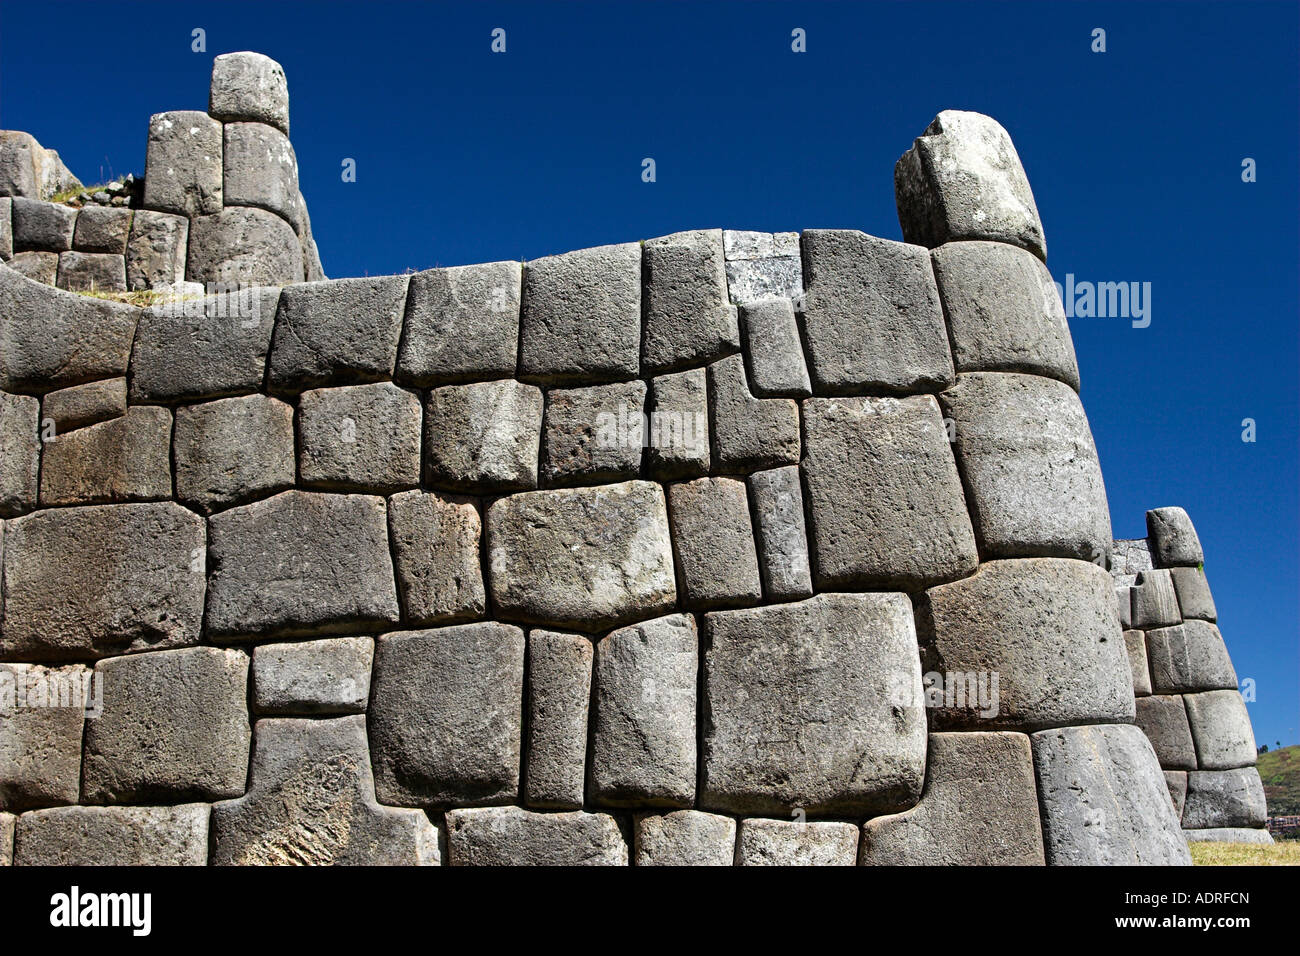 Sacsayhuaman inca fortress ruins ancient stone terrace